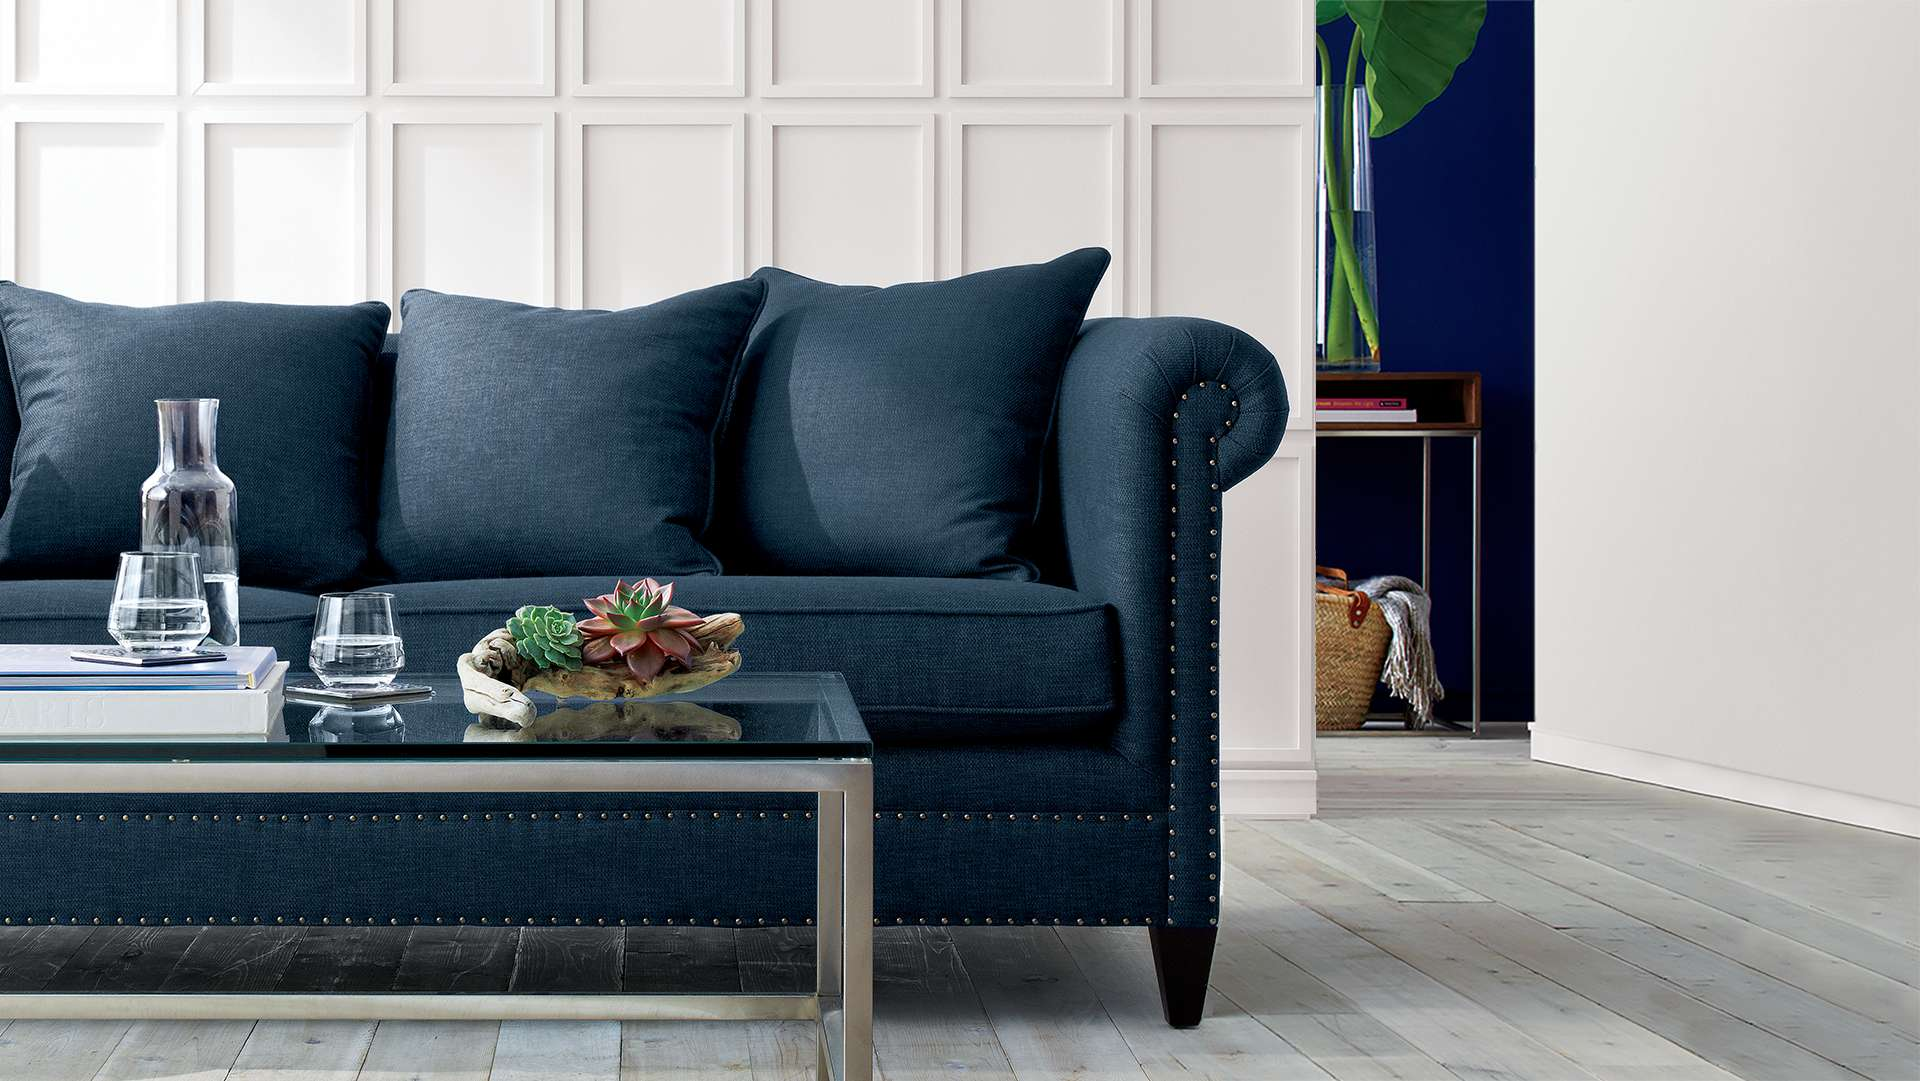 Blue Durham sofa in white room